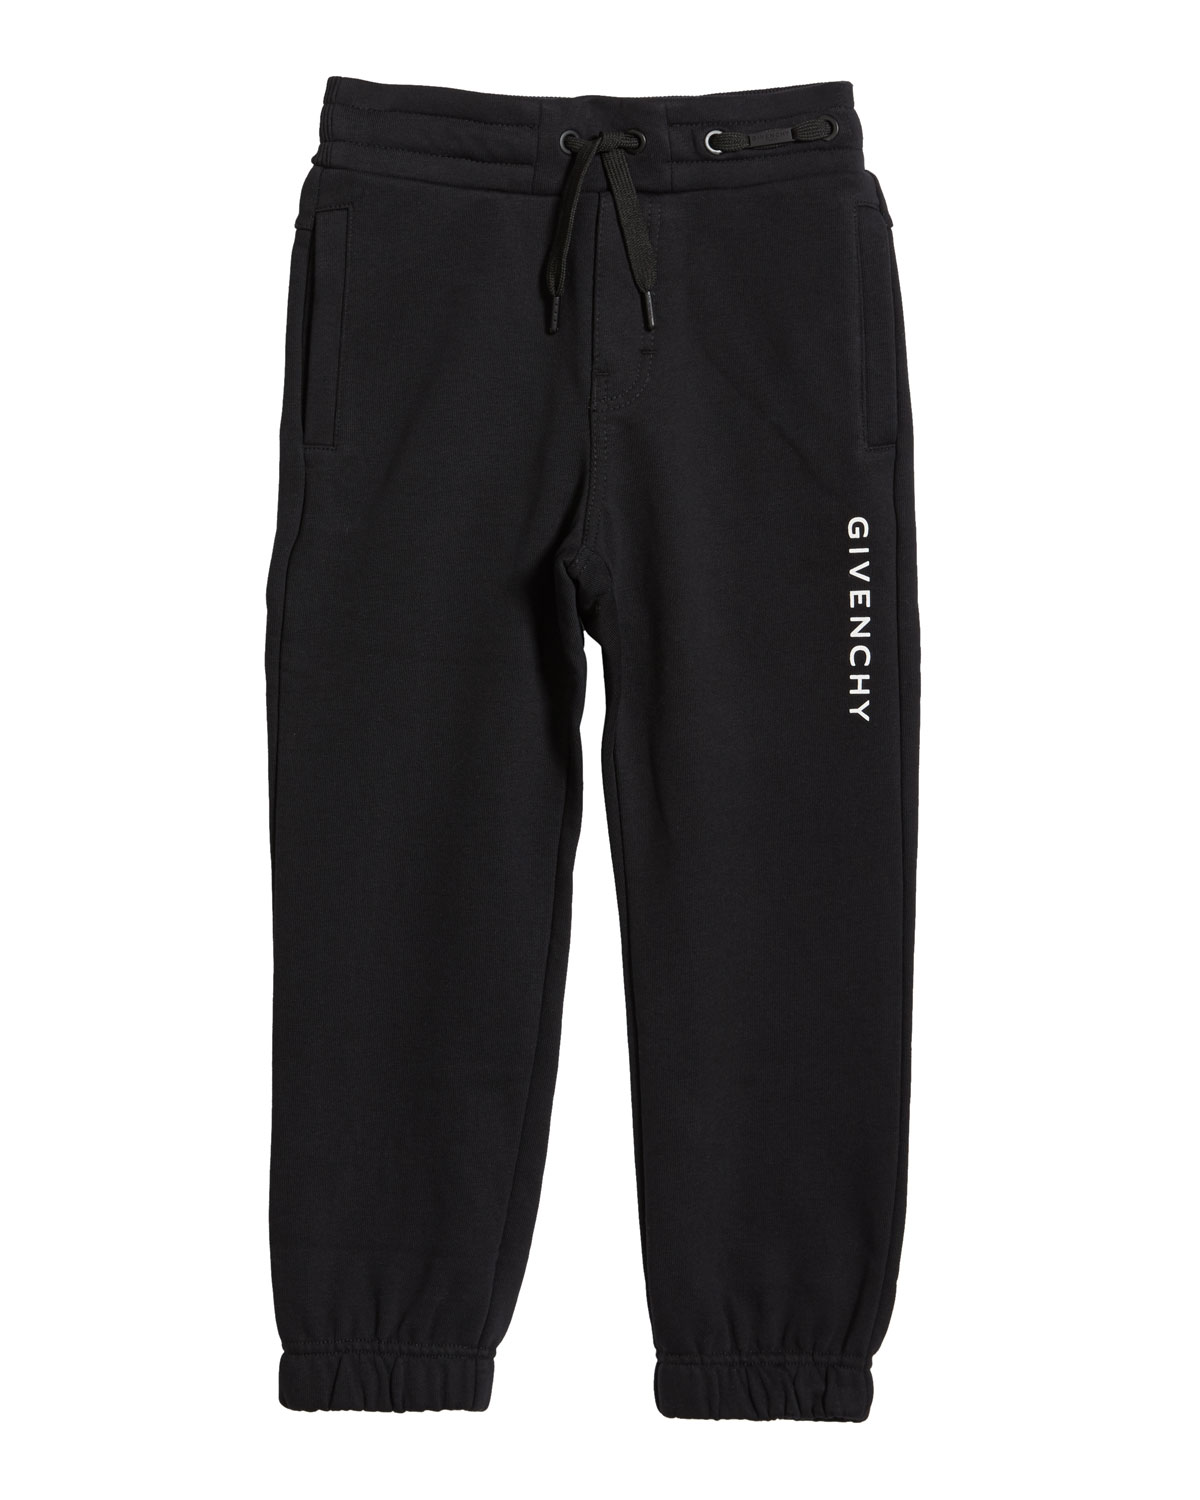 Givenchy Boy's Logo Mini Me Sweatpants, Size 4